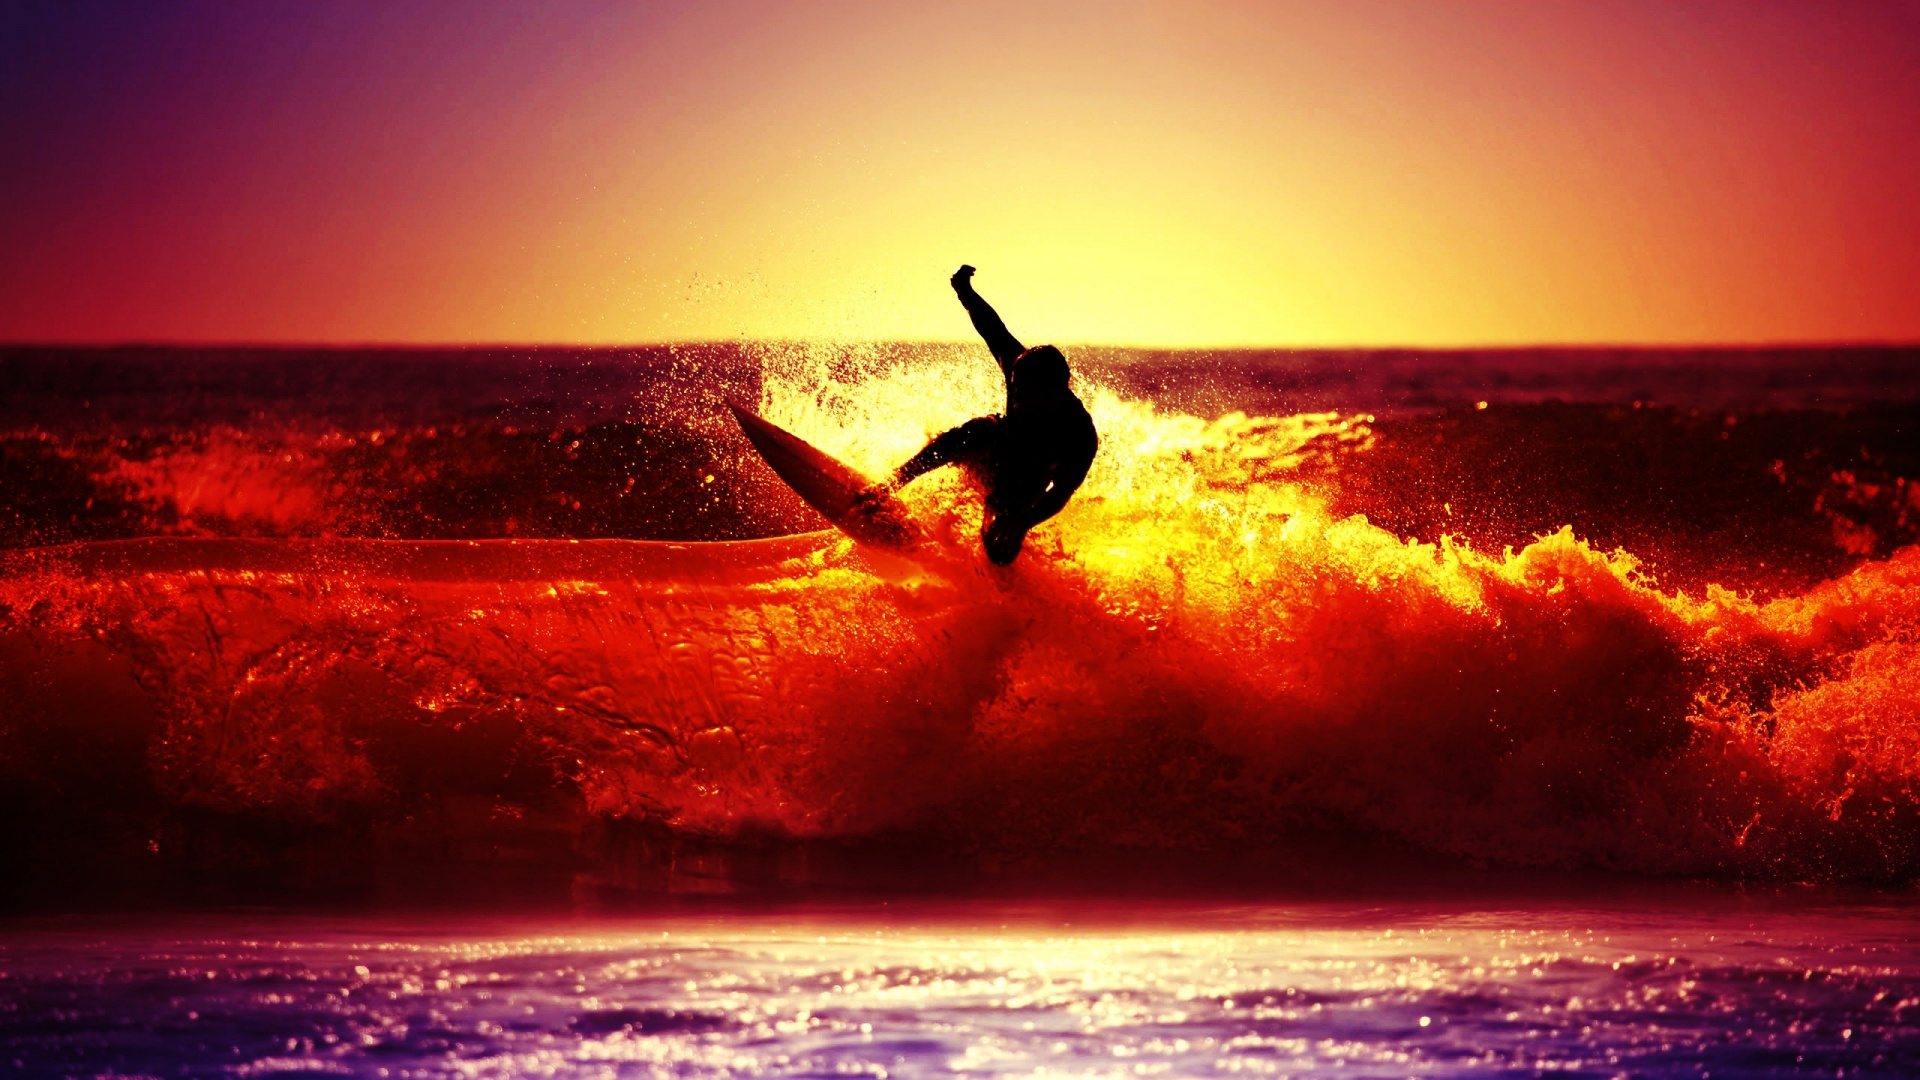 surfing high definition wallpaper - wallpaper, high definition, high